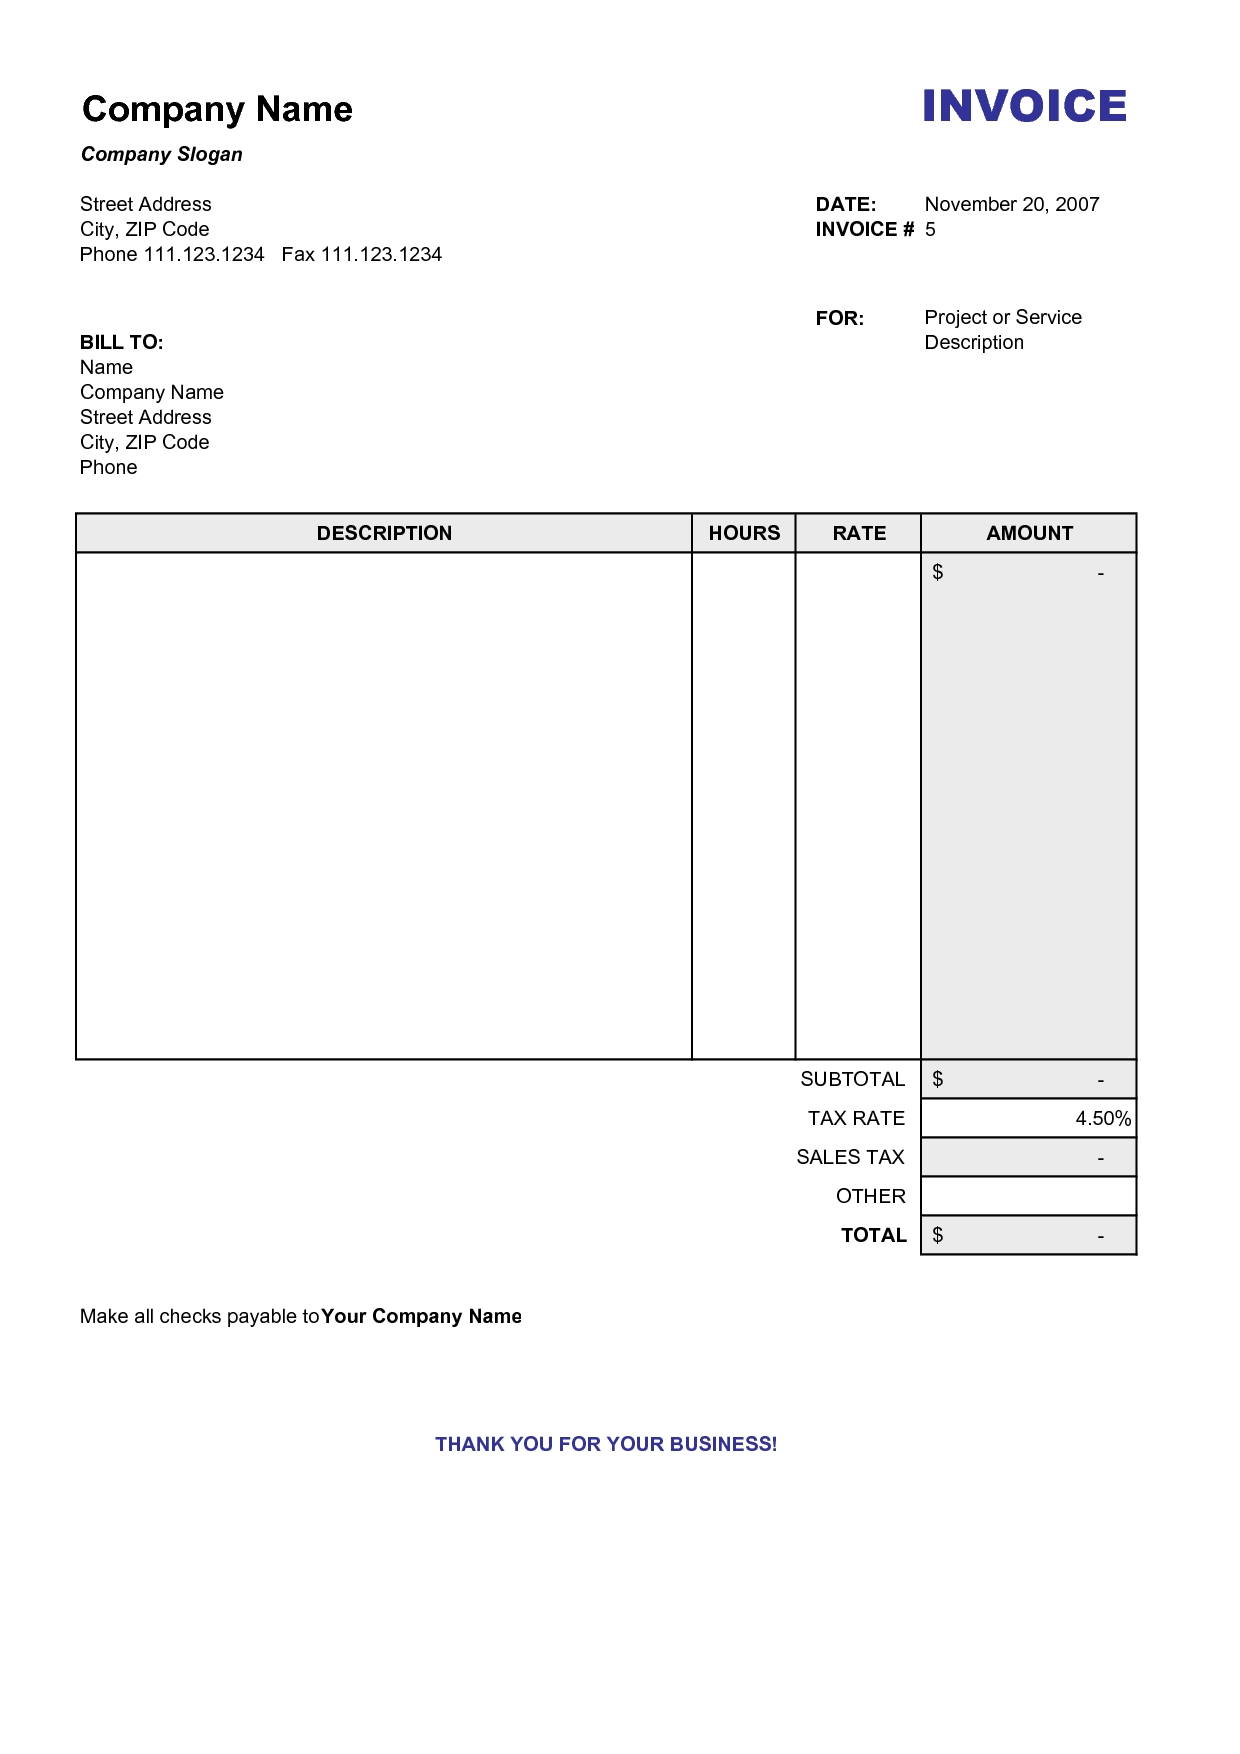 blank billing invoice scope of work template picture of invoice bill